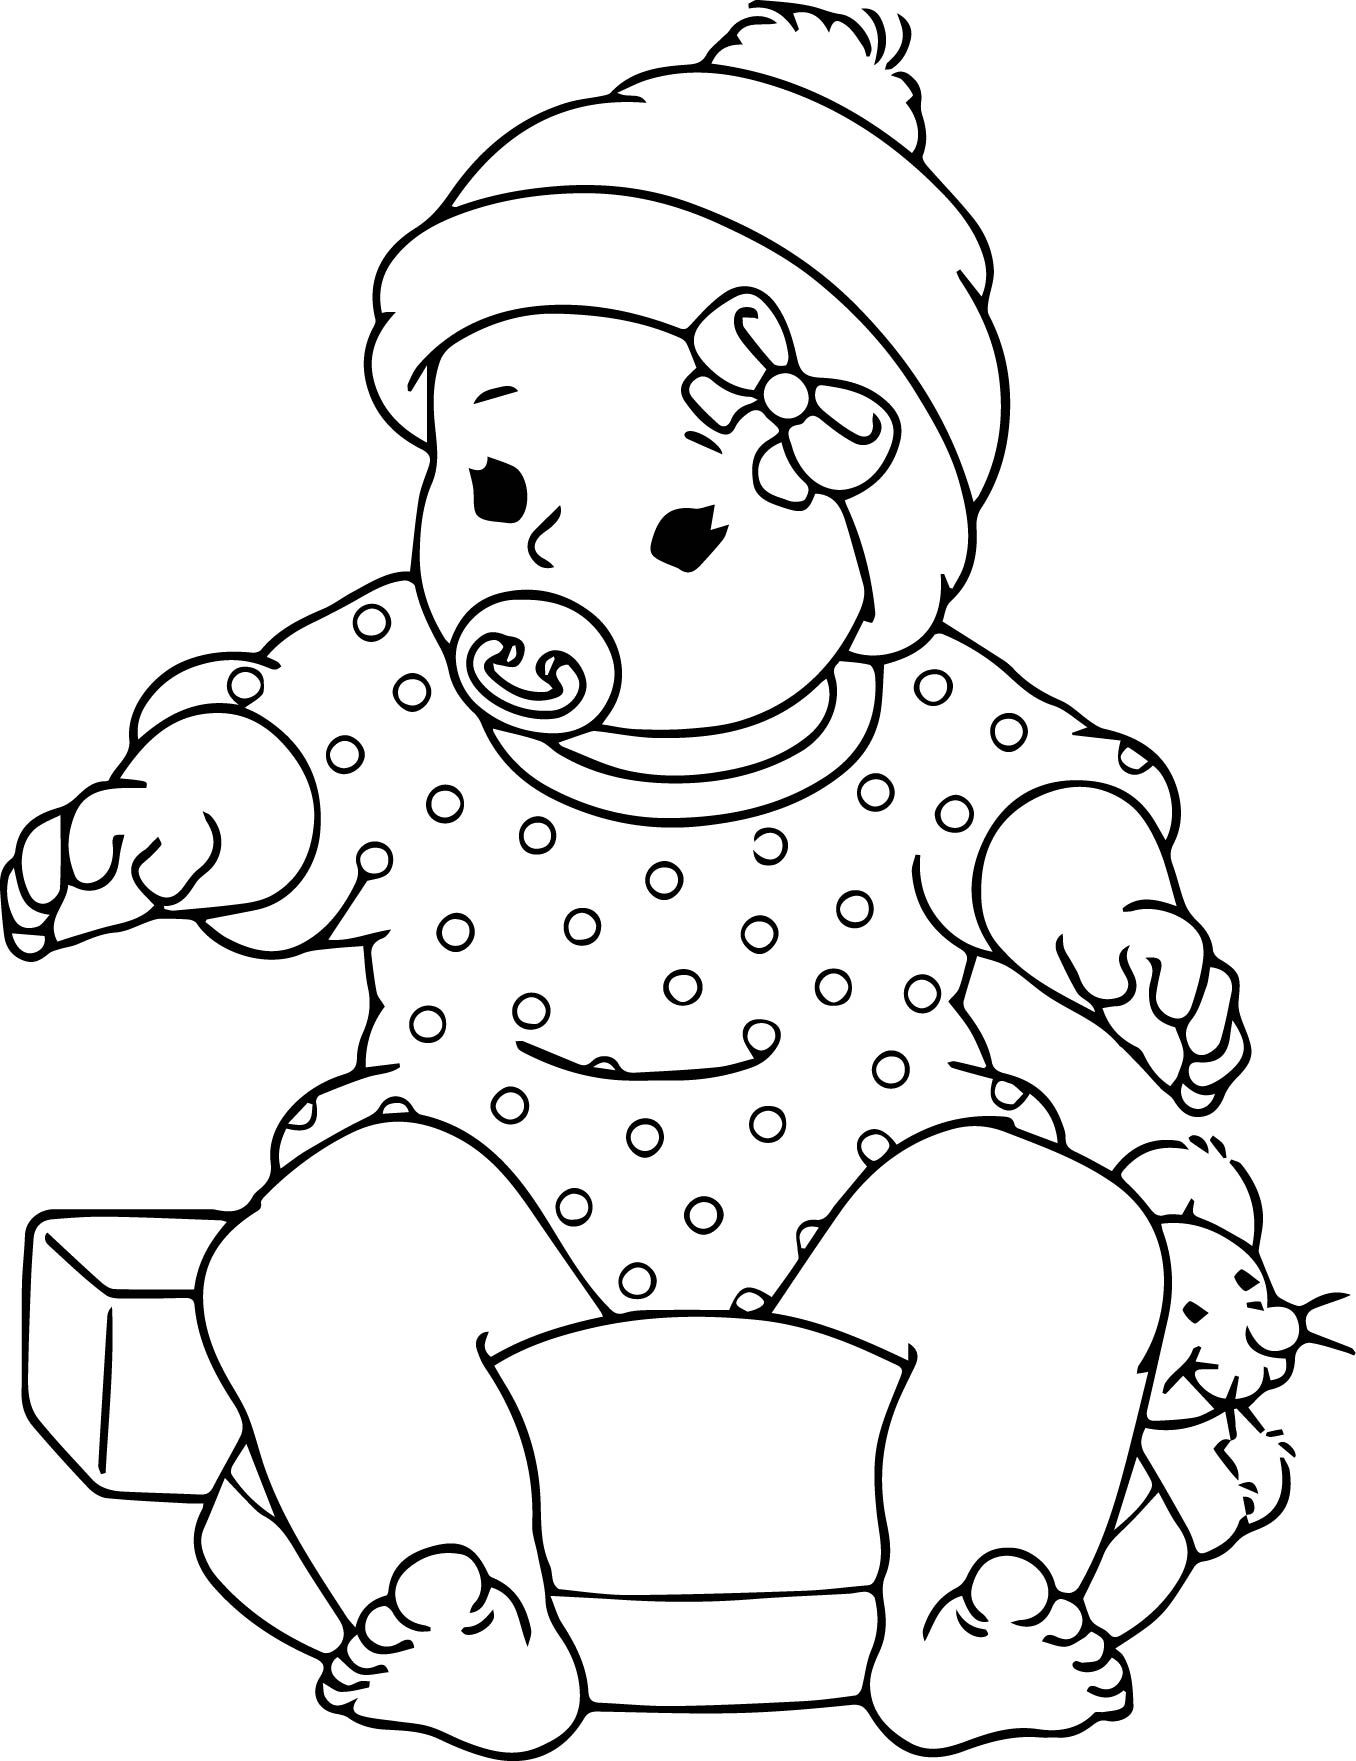 Free Printable Baby Doll Coloring Pages Throughout Inside.